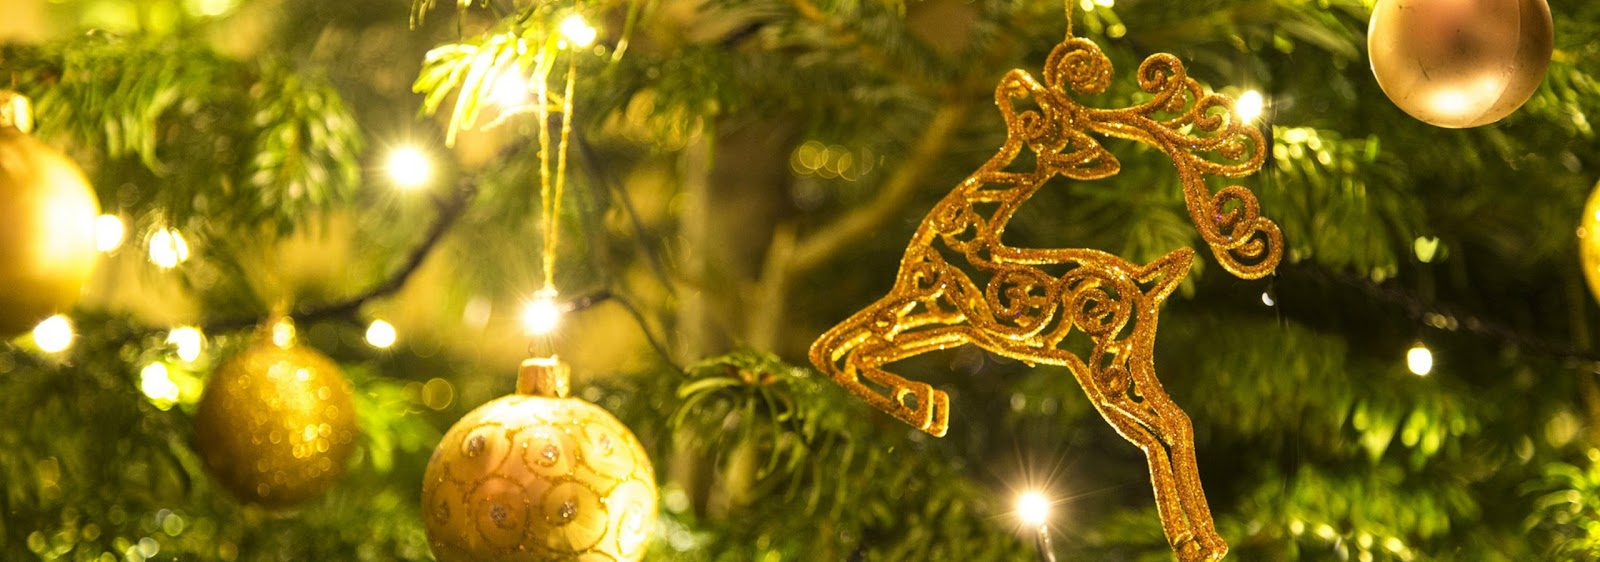 gold baubles and gold reindeer tree decorations